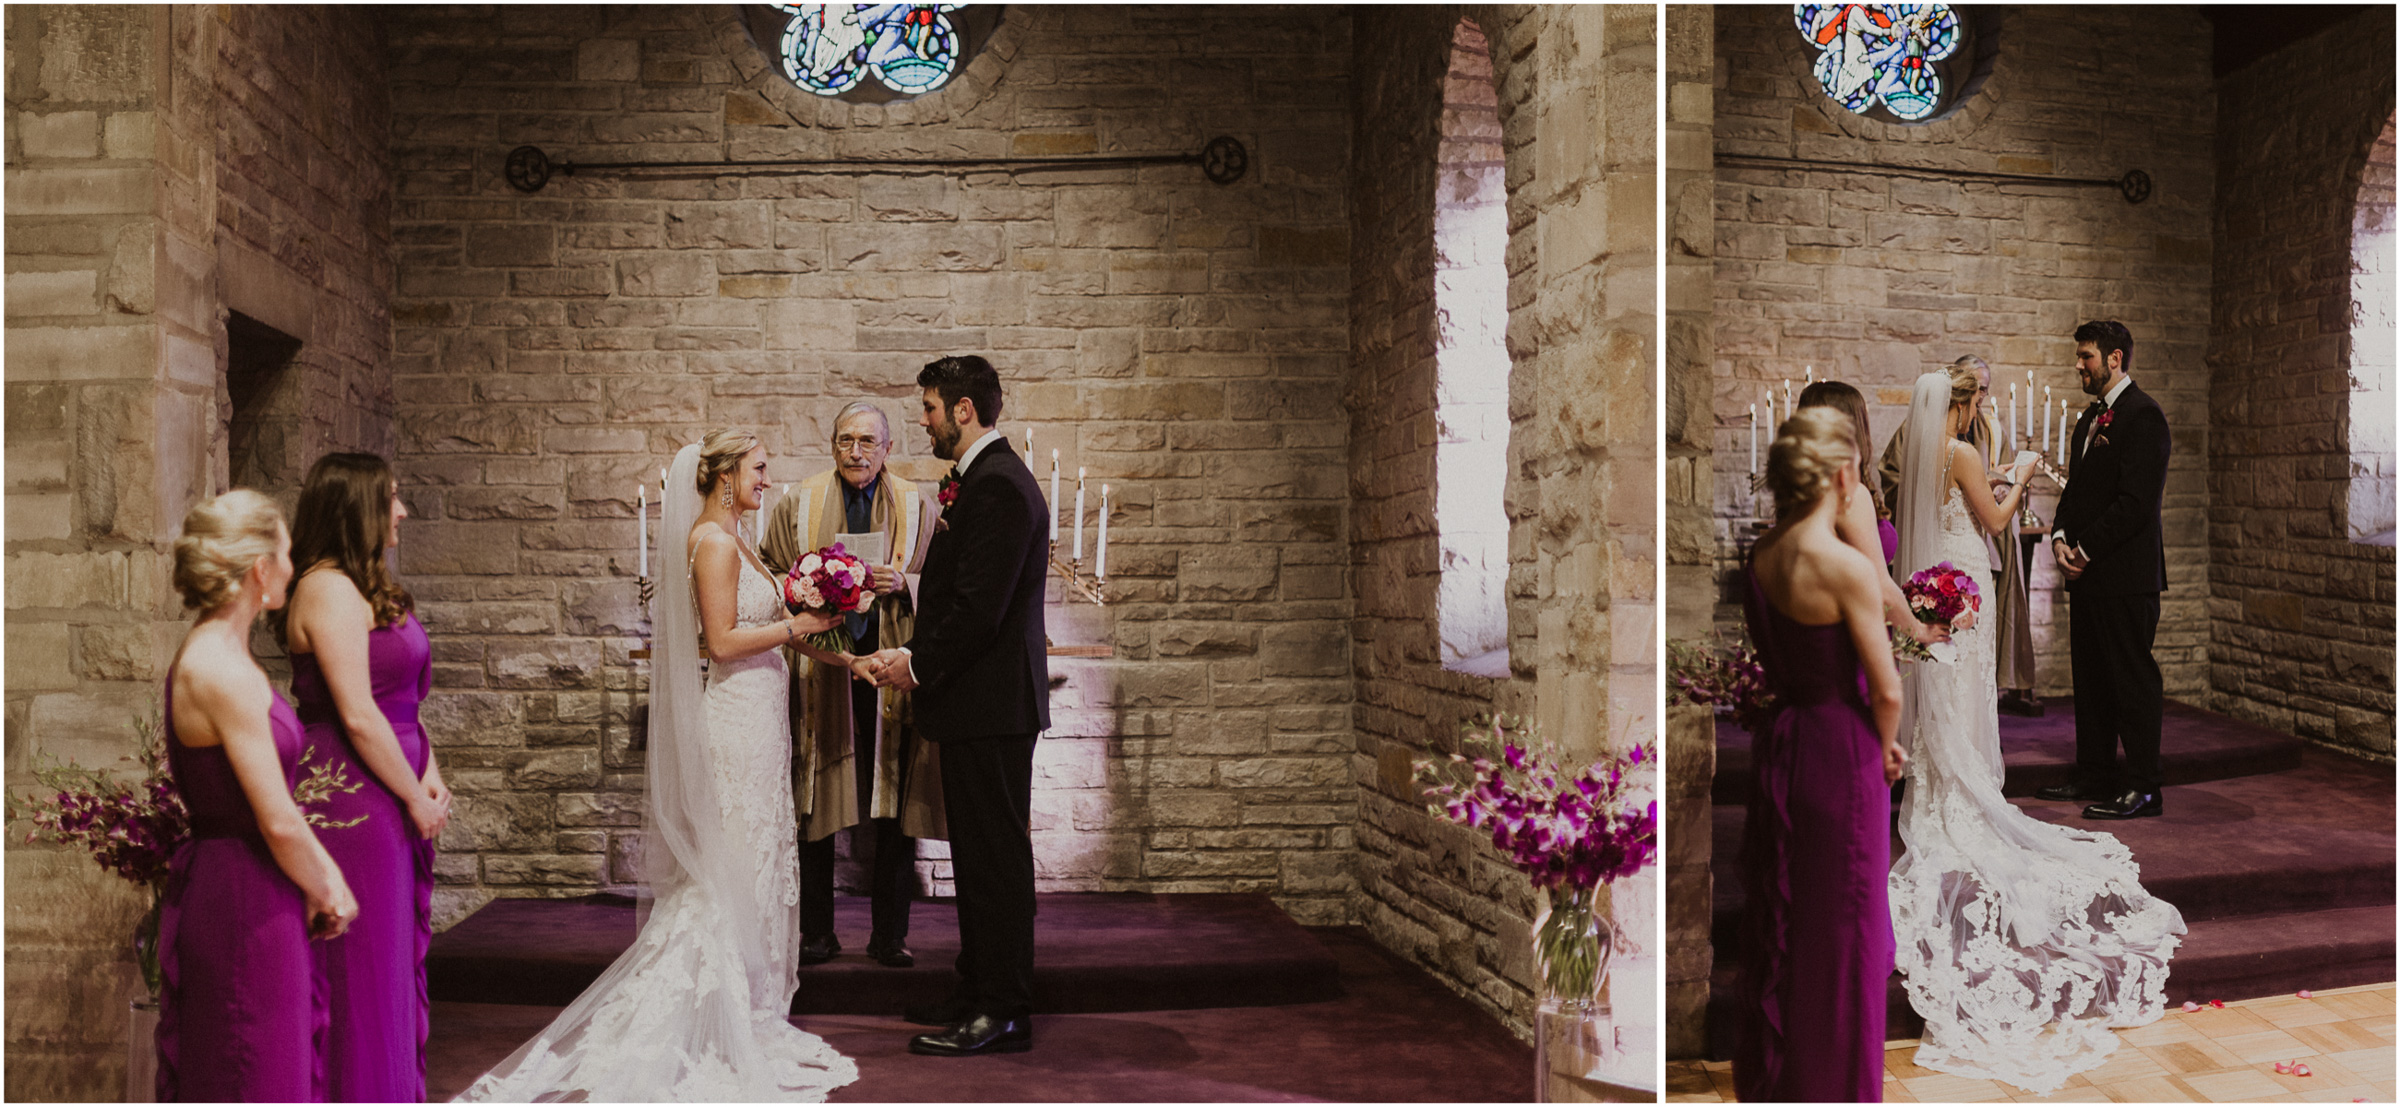 alyssa barletter photography nelson atkins museum intimate romantic spring wedding pilgrim chapel kcmo-13.jpg